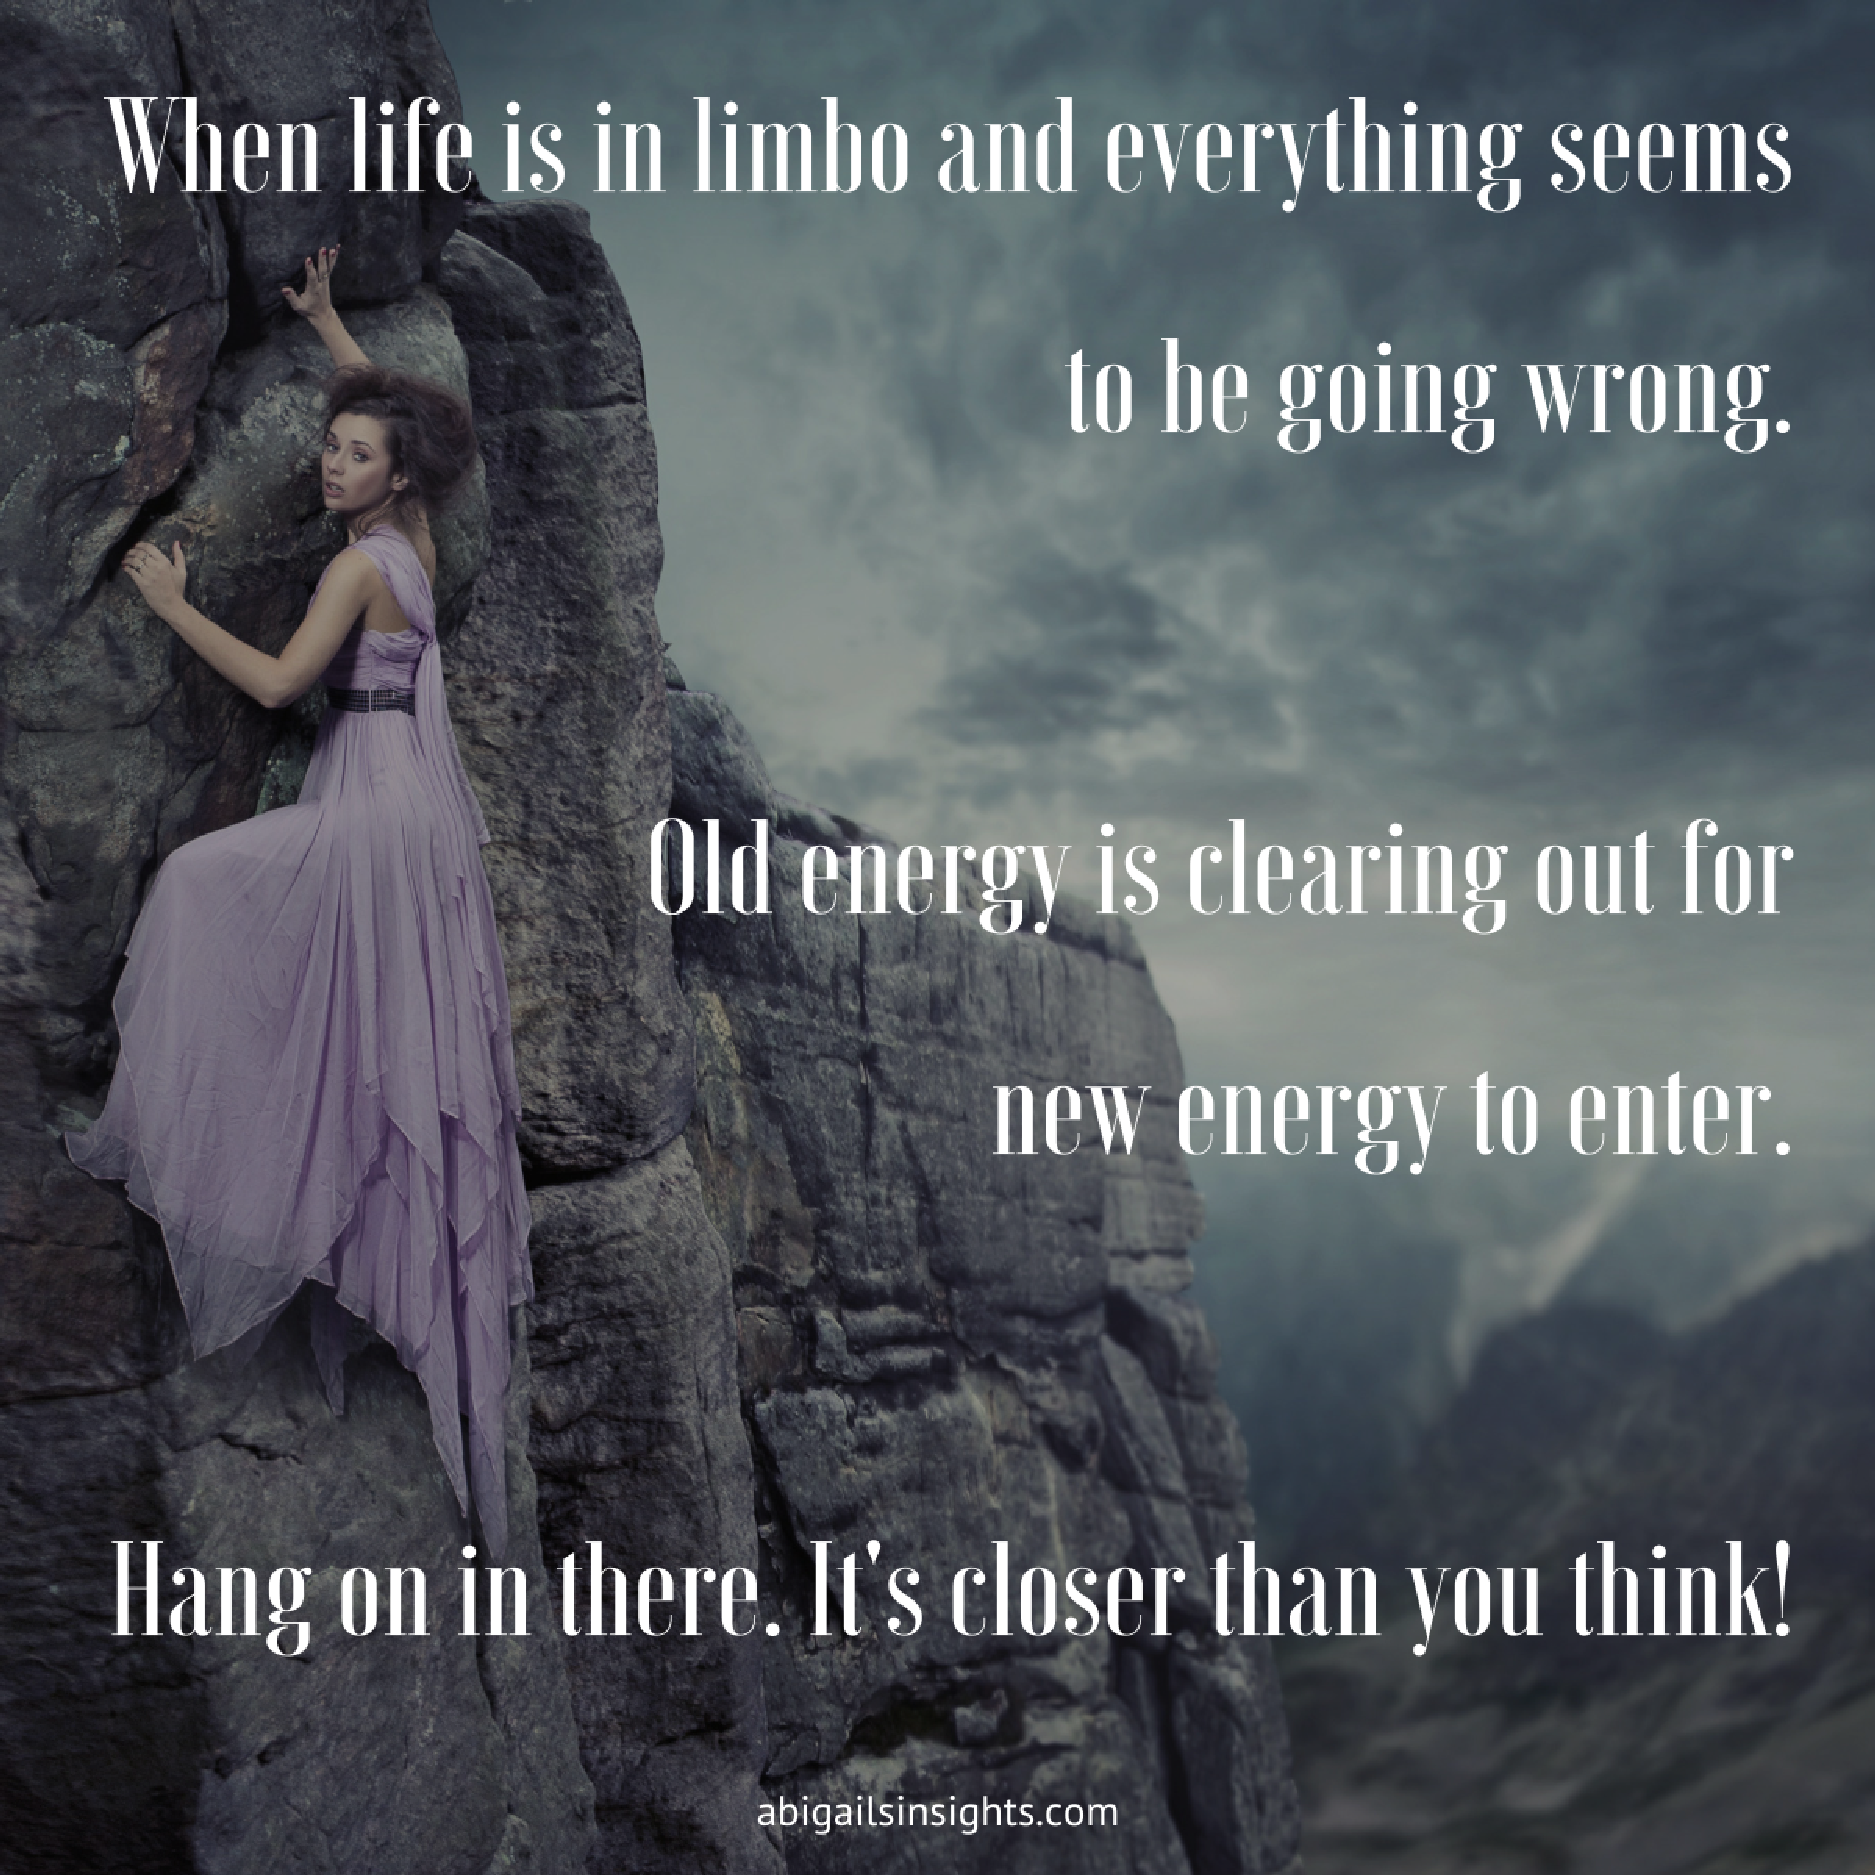 When life is in limbo and everything seems to be going wrong. Old energy is clearing out for new energy to enter. Hang on in there it's closer than you think!